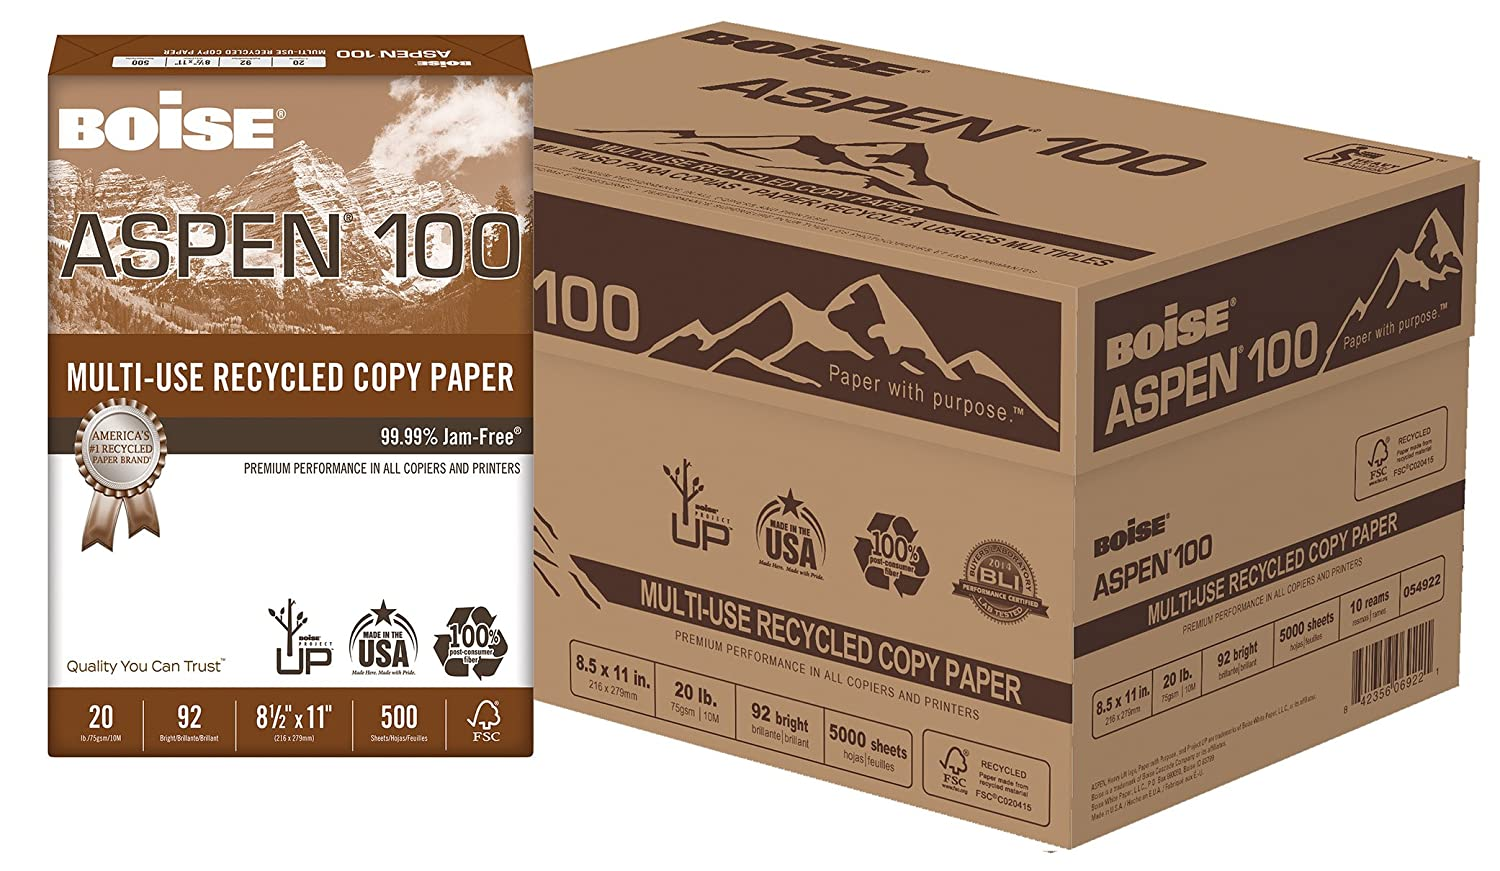 BOISE ASPEN 100% Multi-Use Recycled Copy Paper, 8.5 x 11, 92 Bright White, 20 lb, 10 ream carton (5,000 Sheets) Boise Paper 054922-CTN